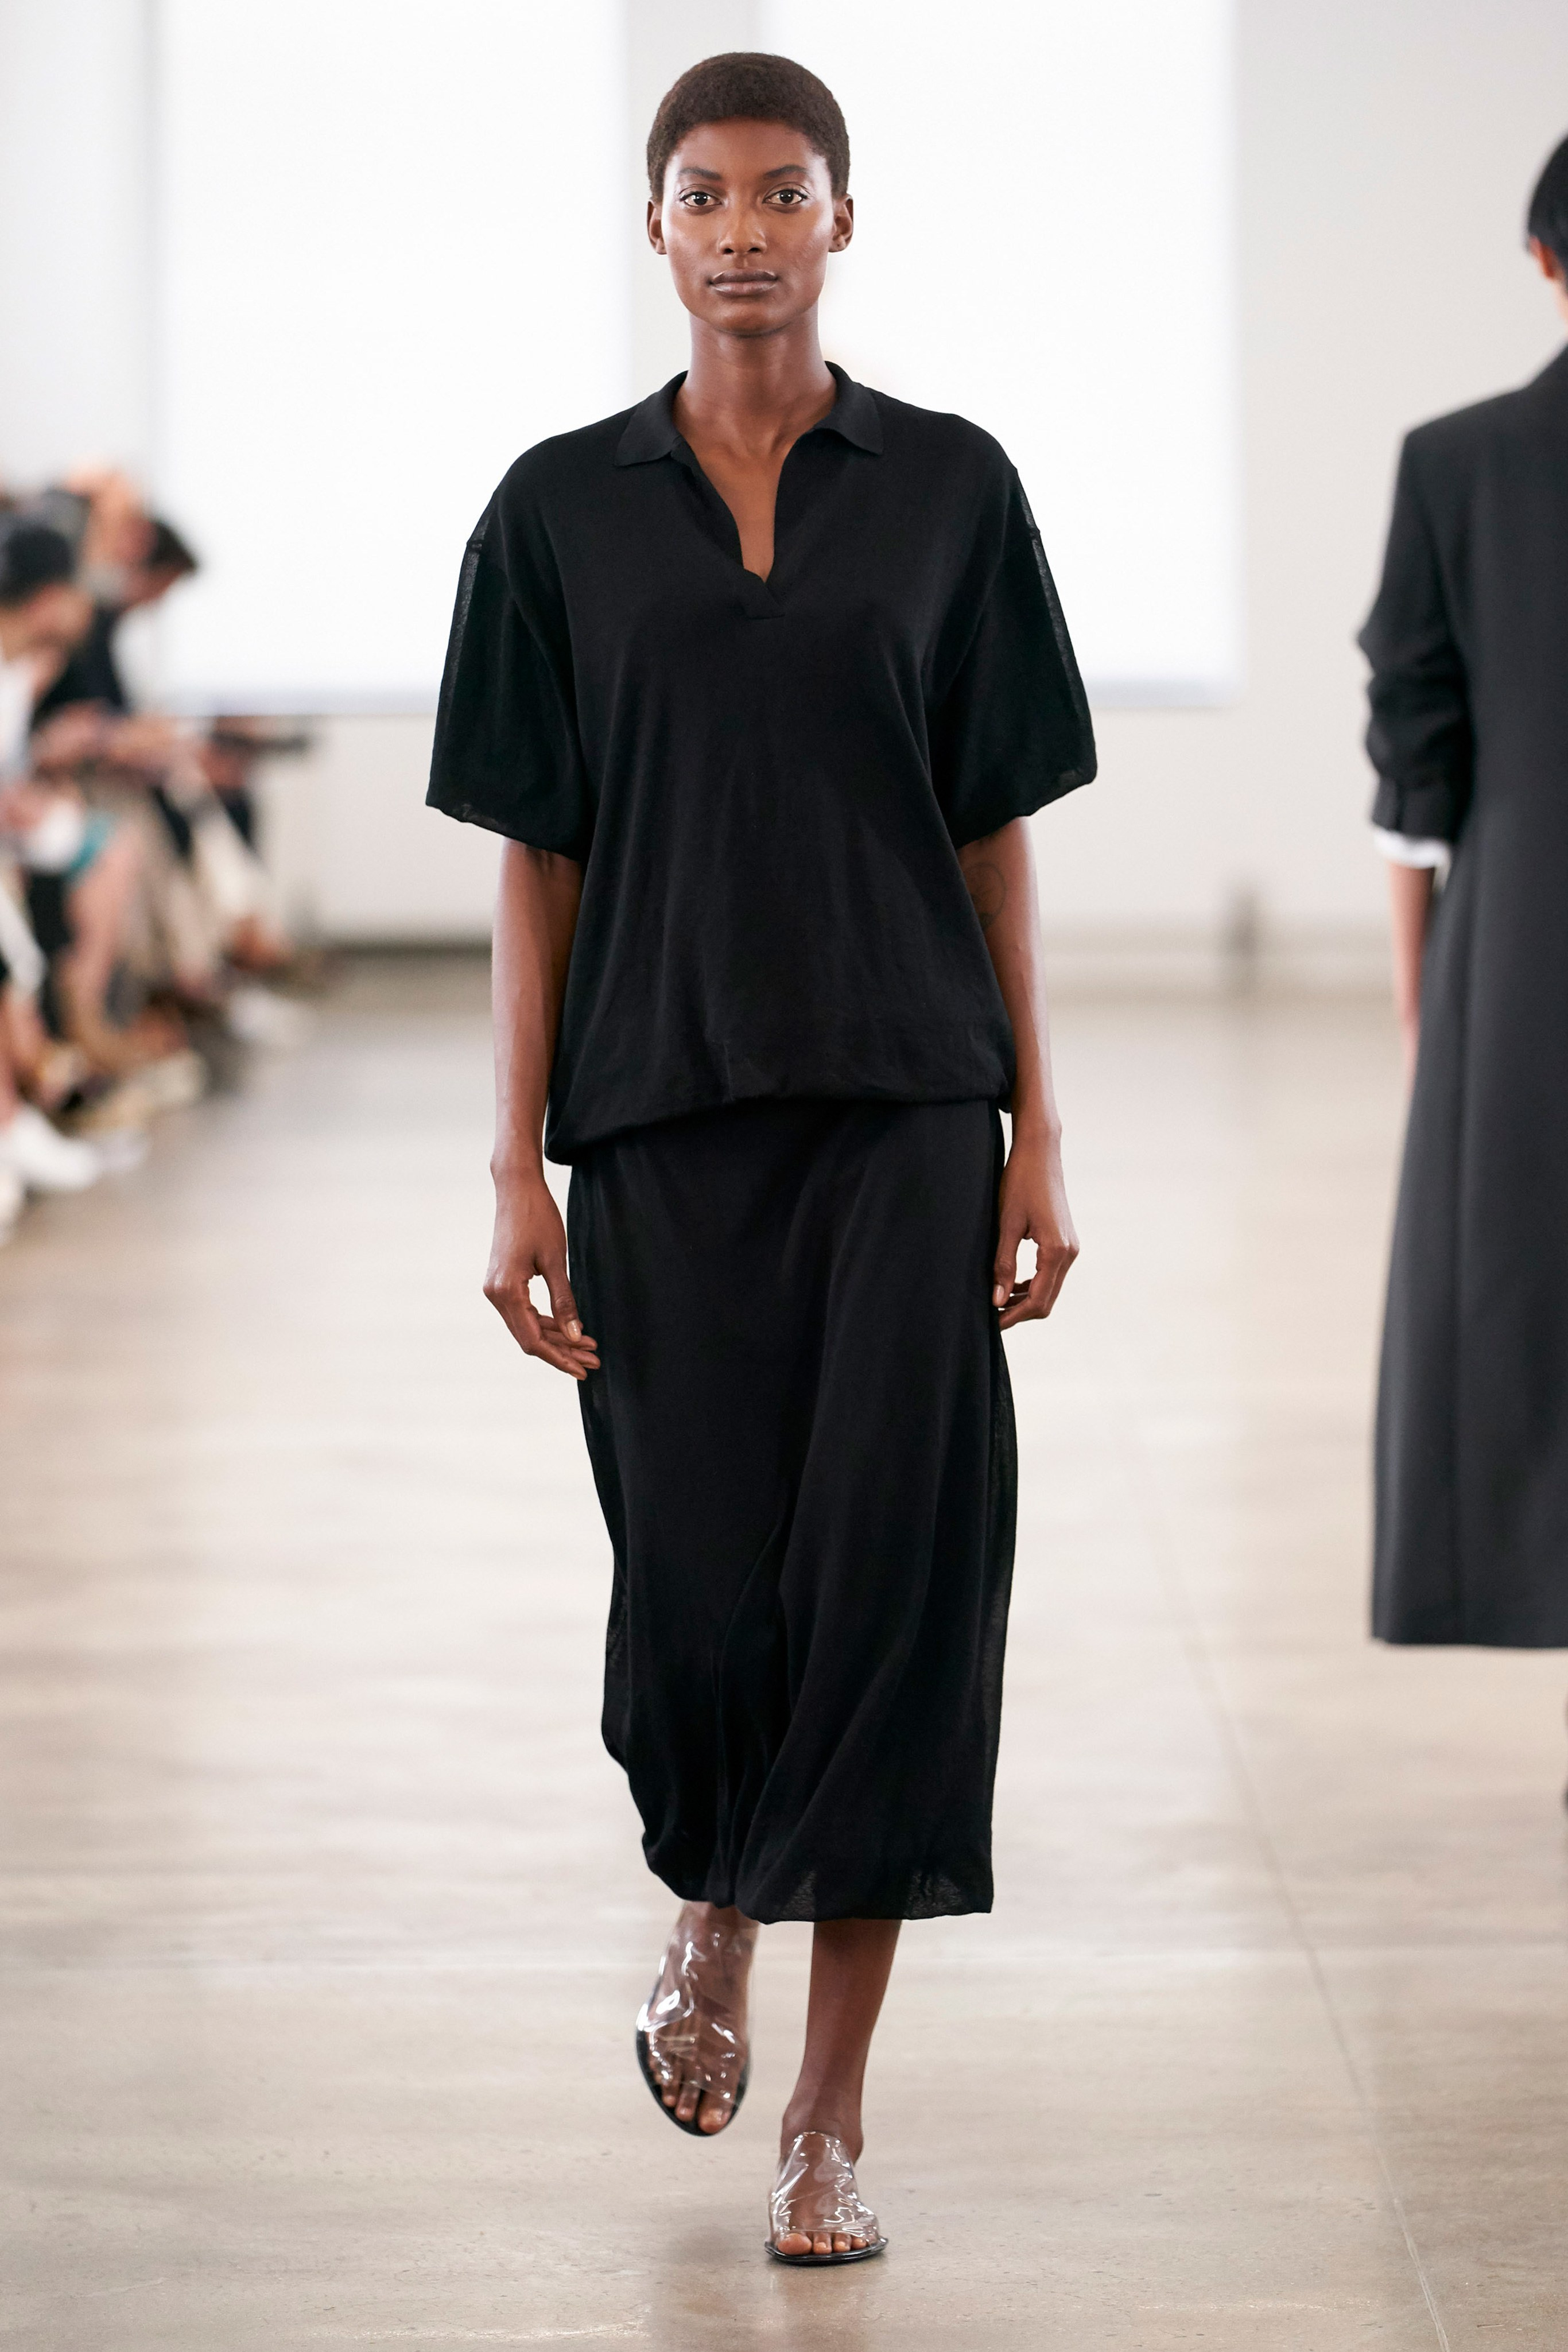 Trini | The Row Spring 2020 RTW Collection